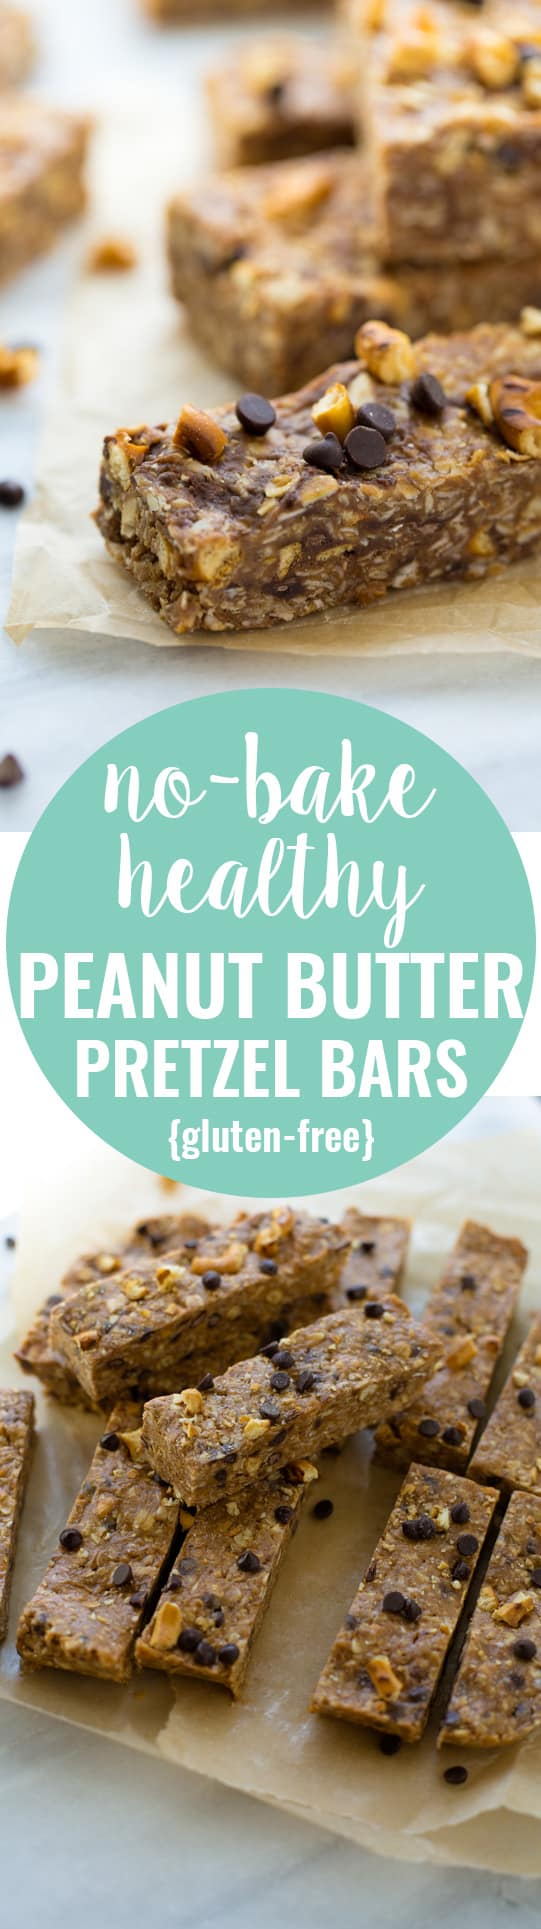 No-Bake, Healthy Peanut Butter Pretzel Bars! Honey-sweetened and so easy to make. (Gluten-Free)